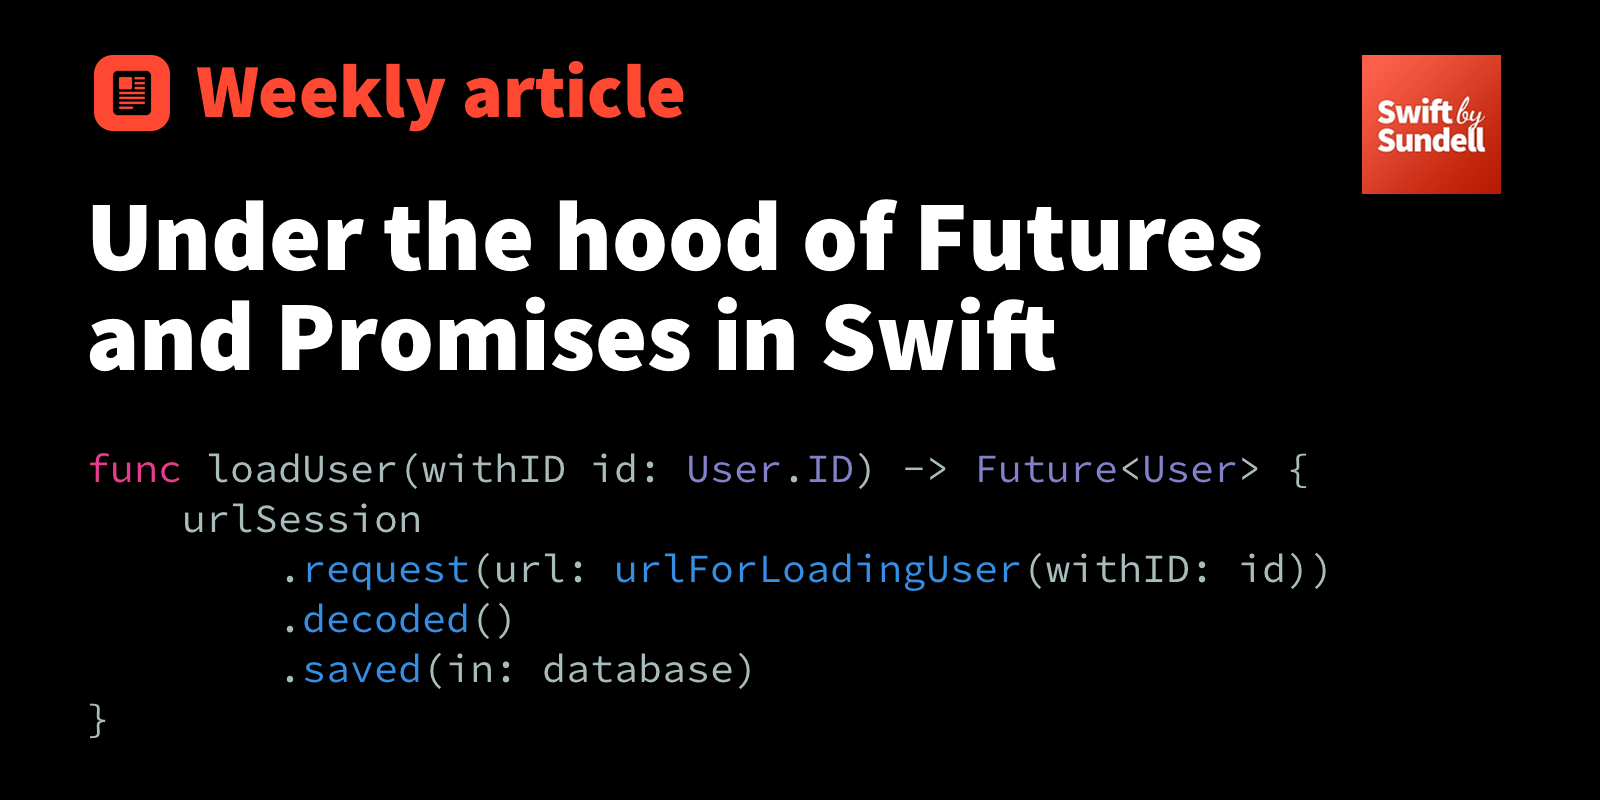 Under the hood of Futures and Promises in Swift | Swift by Sundell